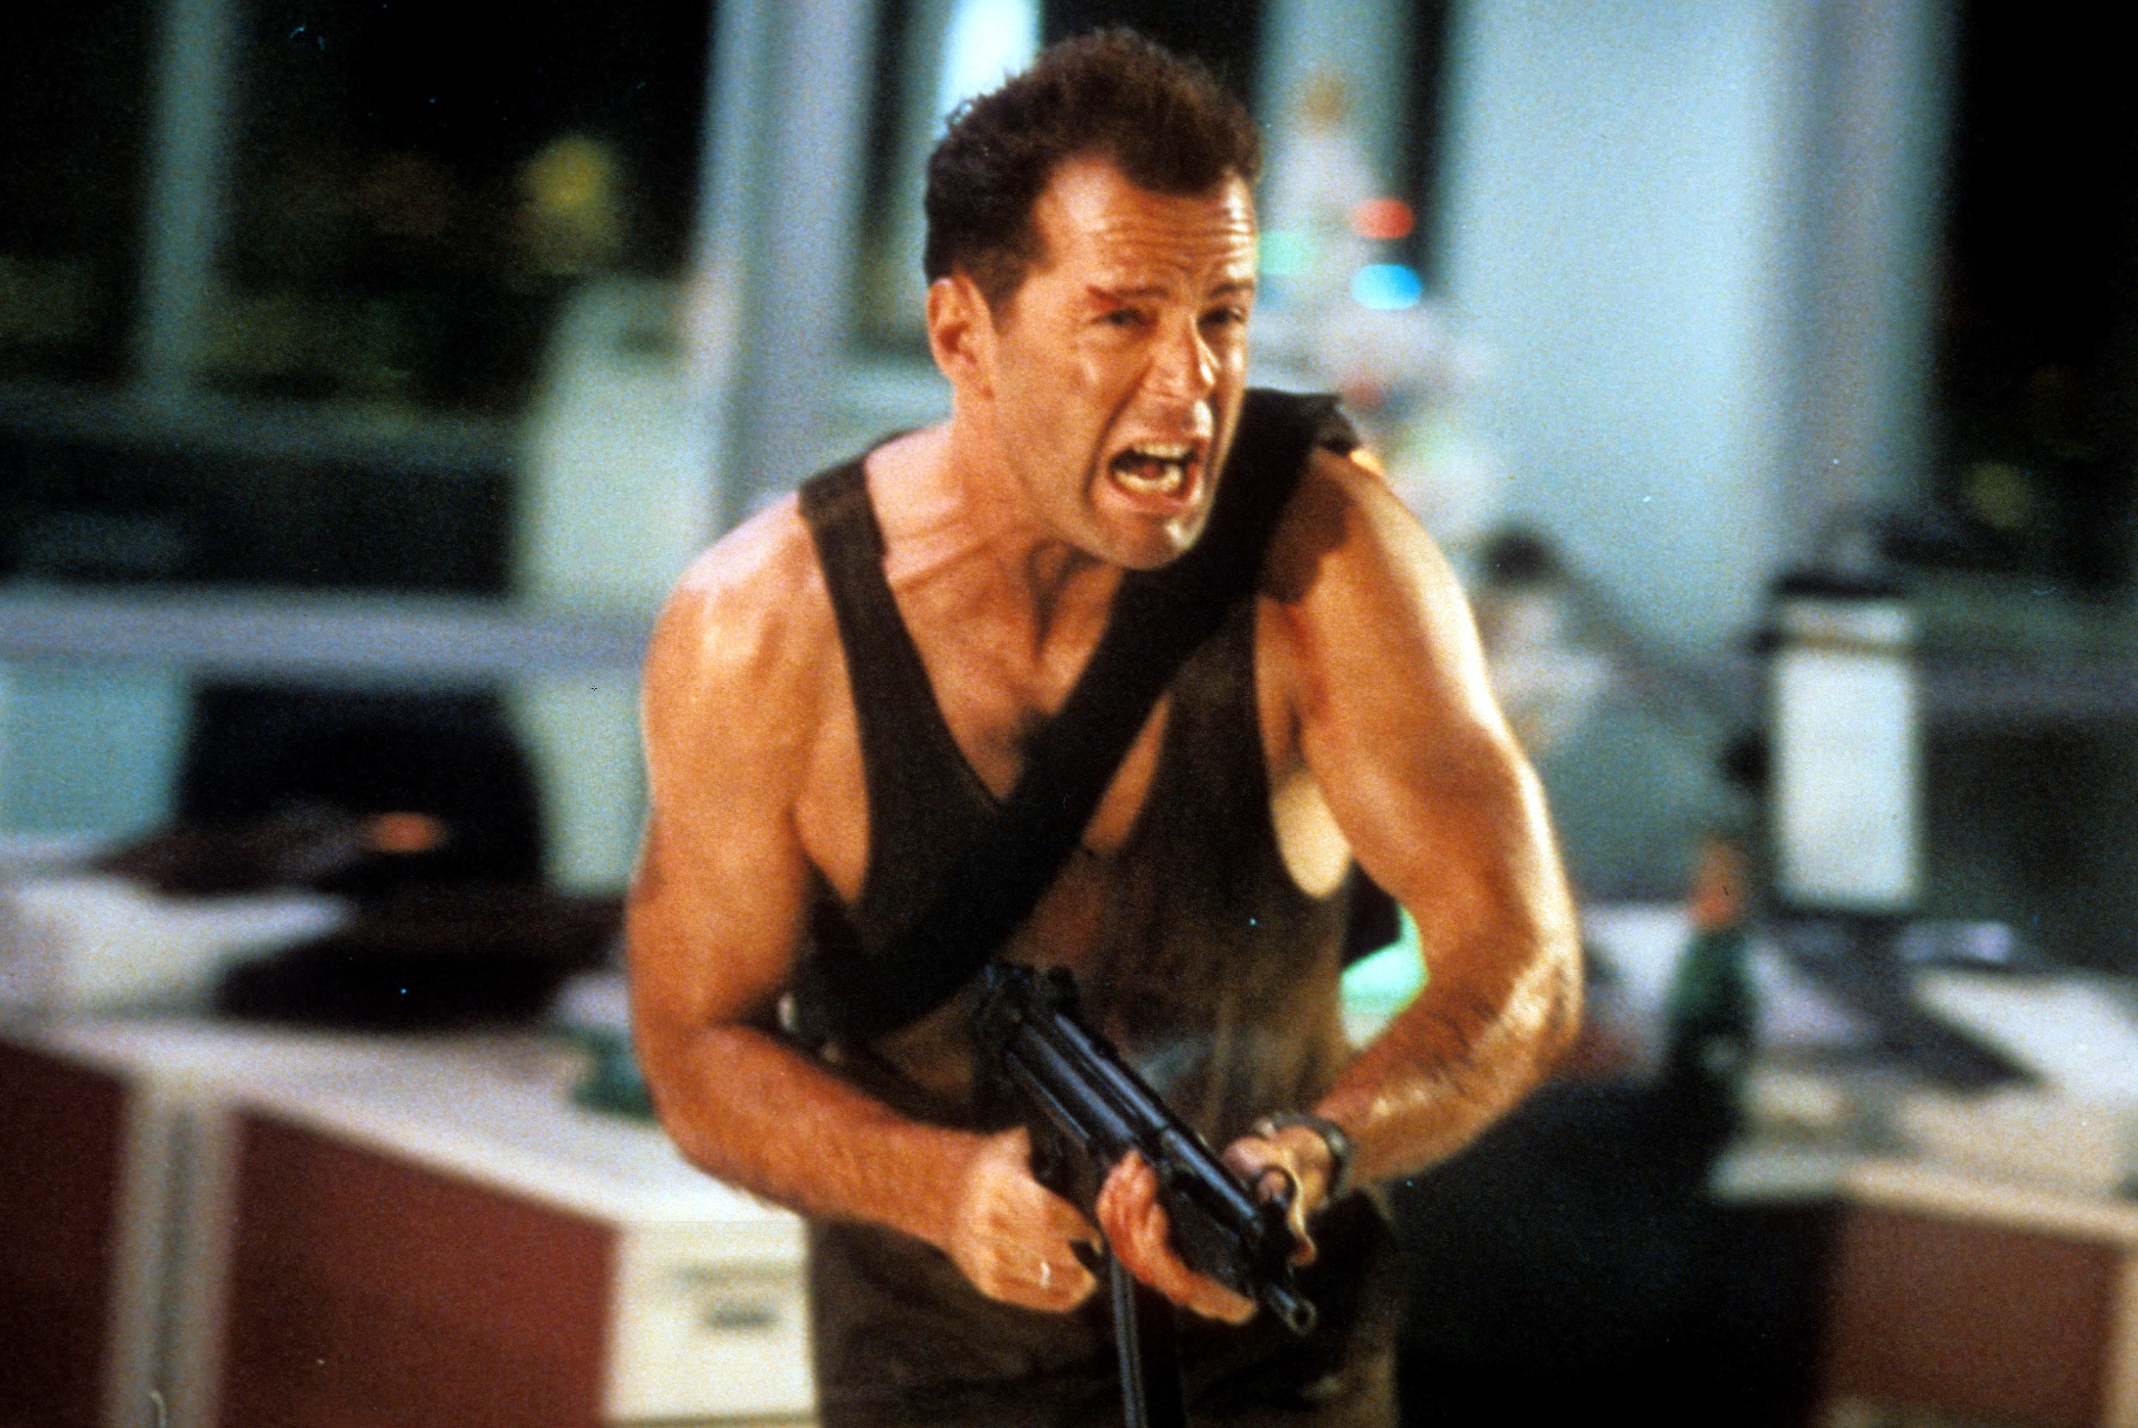 die hard 6 john mcclane machine gun bruce willis 25 Unpopular Casting Choices That Actually Turned Out Great